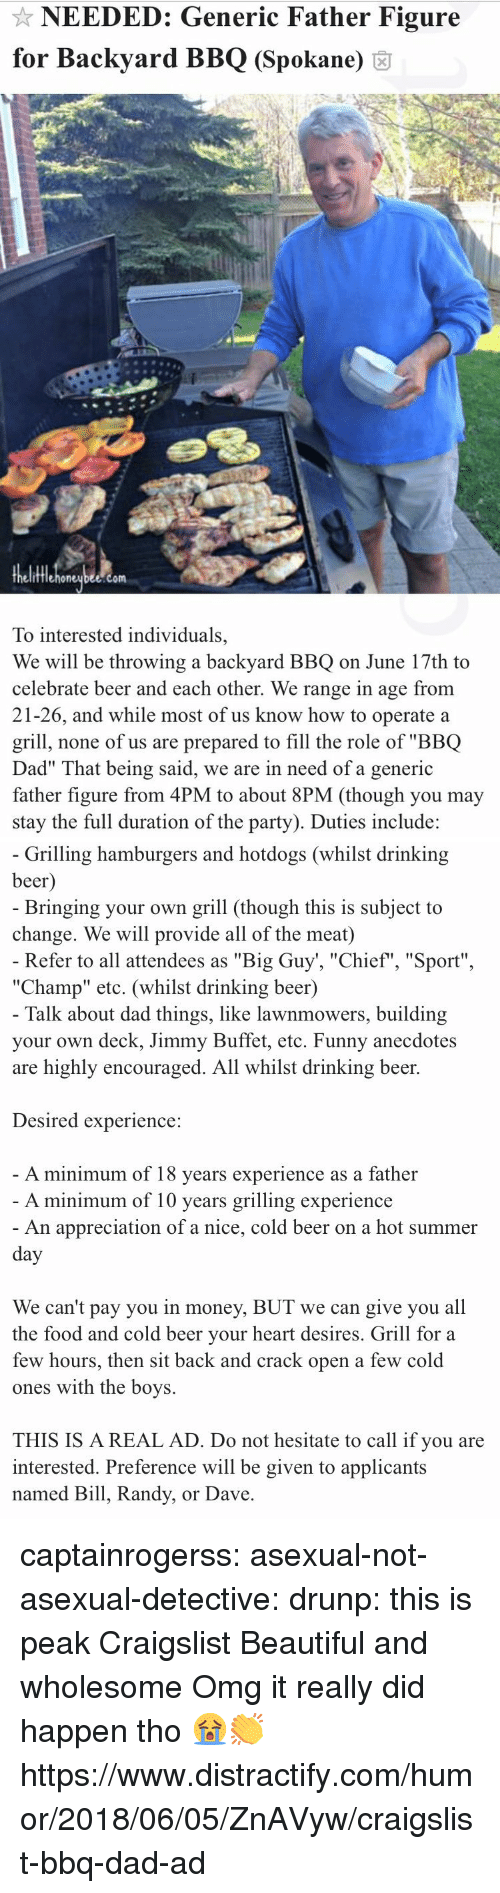 """Craigslist: NEEDED: Generic Father Figure  for Backyard BBQ (Spokane) 6  fflehoneubee.com  To interested individuals,  We will be throwing a backyard BBQ on June 17th to  celebrate beer and each other. We range in age from  21-26, and while most of us know how to operate a  grill, none of us are prepared to fill the role of """"BBQ  Dad"""" That being said, we are in need of a generic  father figure from 4PM to about 8PM (though you may  stay the full duration of the party). Duties include:   Grilling hamburgers and hotdogs (whilst drinking  beer  Bringing your own grill (though this is subject to  change. We will provide all of the meat)  Refer to all attendees as """"Big Guy', """"Chief"""", """"Sport""""  """"Champ"""" etc. (whilst drinking beer)  Talk about dad things, like lawnmowers, building  your own deck, Jimmy Buffet, etc. Funny anecdotes  are highly encouraged. All whilst drinking beer.  Desired experience:  A minimum of 18 vears experience as a father  A minimum of 10 years grilling experience  An appreciation of a nice, cold beer on a hot summer  We can't pay you in money, BUT we can give you all  the food and cold beer vour heart desires. Grill for a  few hours, then sit back and crack open a few cold  ones with the boys.  THIS IS A REAL AD. Do not hesitate to call if you are  interested. Preference will be given to applicants  named Bill, Randy, or Dave captainrogerss:   asexual-not-asexual-detective:   drunp: this is peak Craigslist  Beautiful and wholesome   Omg it really did happen tho 😭👏 https://www.distractify.com/humor/2018/06/05/ZnAVyw/craigslist-bbq-dad-ad"""